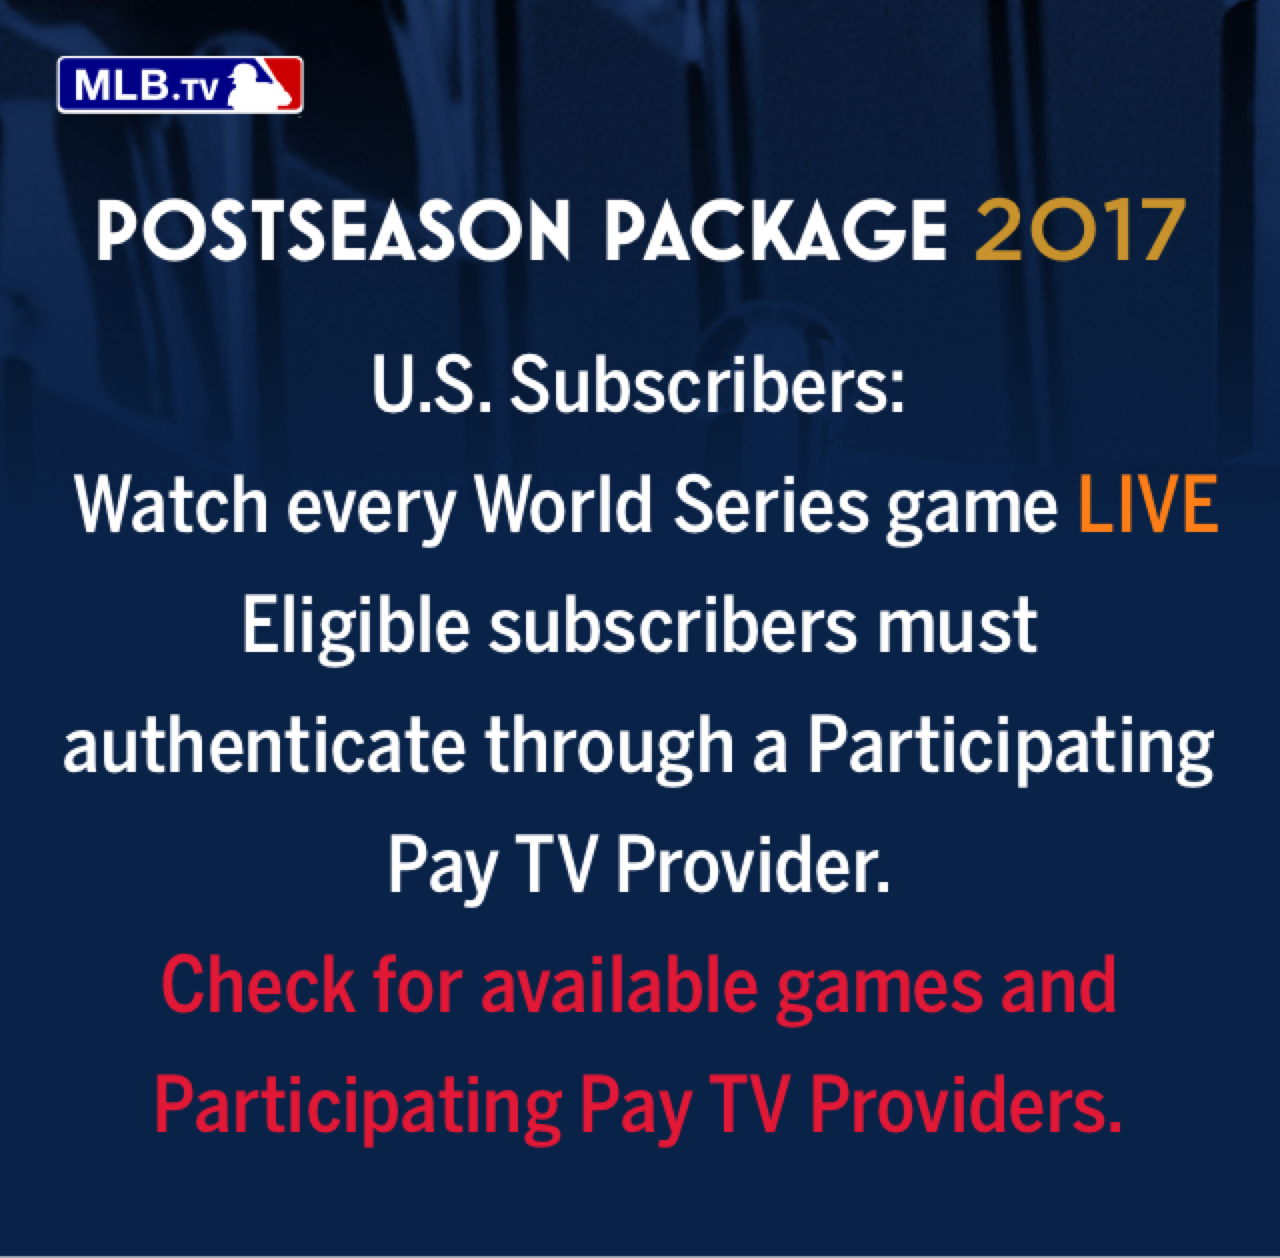 U.S. Subscribers: Watch every World Series game LIVE Eligible subscribers must authenticate through a Participating Pay TV Provider. Check for available games and Participating Pay TV Providers.